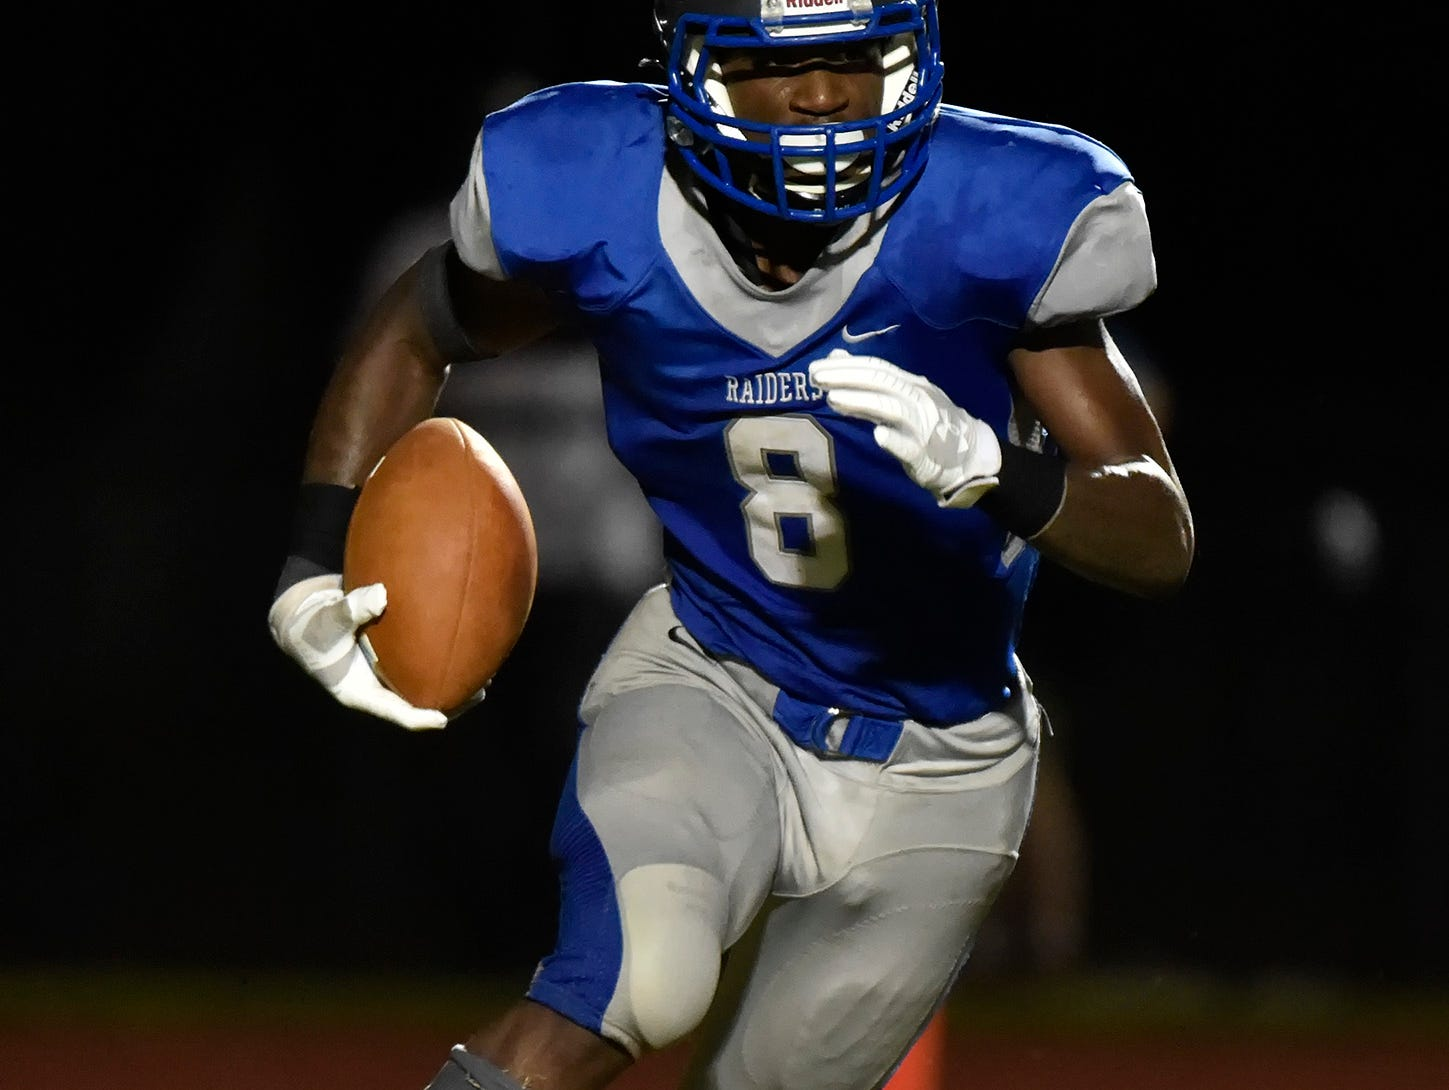 Woodbridge's Jamon Kane (8) runs with the ball in their home game against Wilmington Friends at Woodbridge High School.